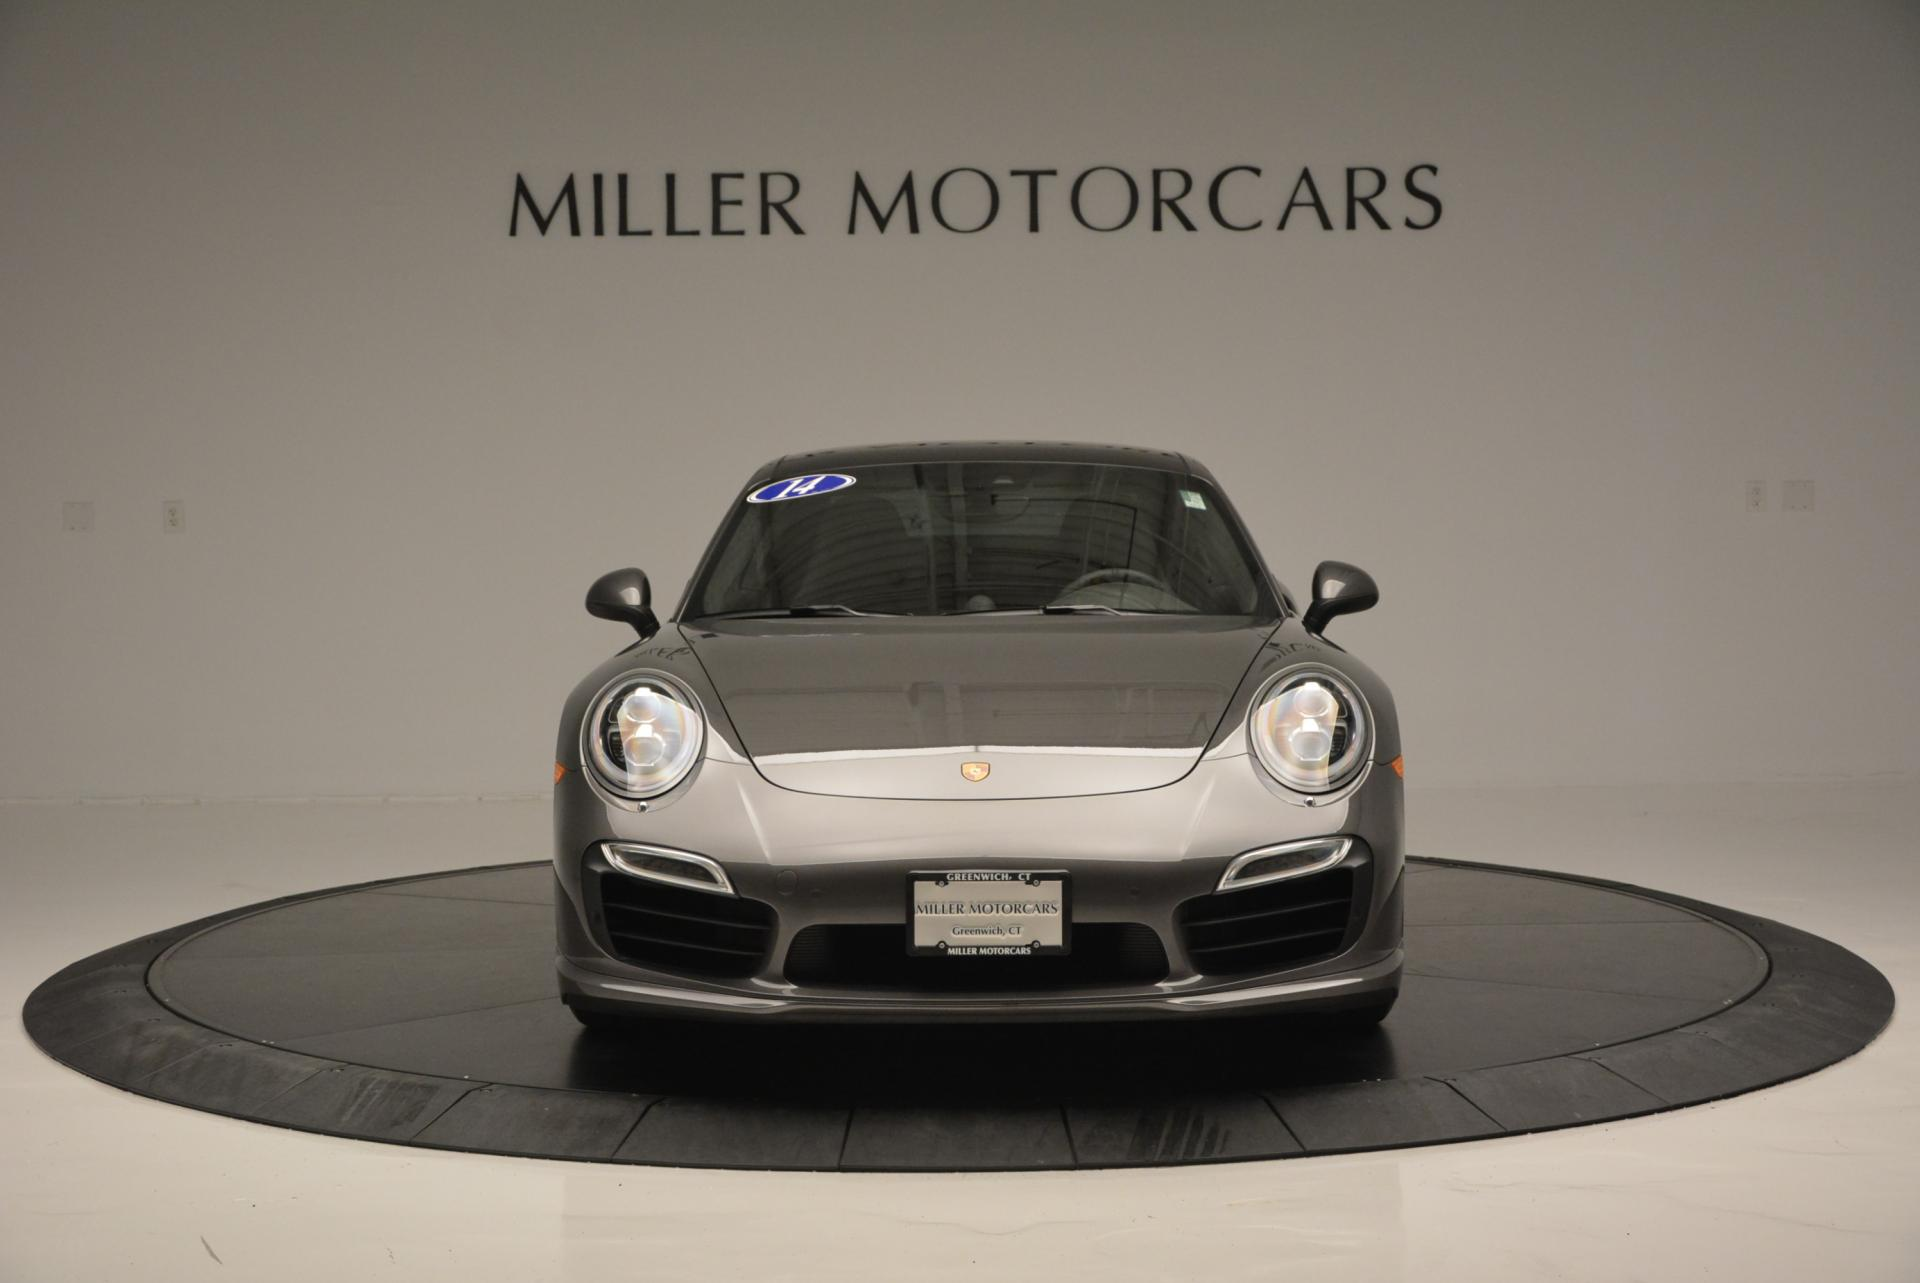 Used 2014 Porsche 911 Turbo S For Sale In Greenwich, CT 113_p11